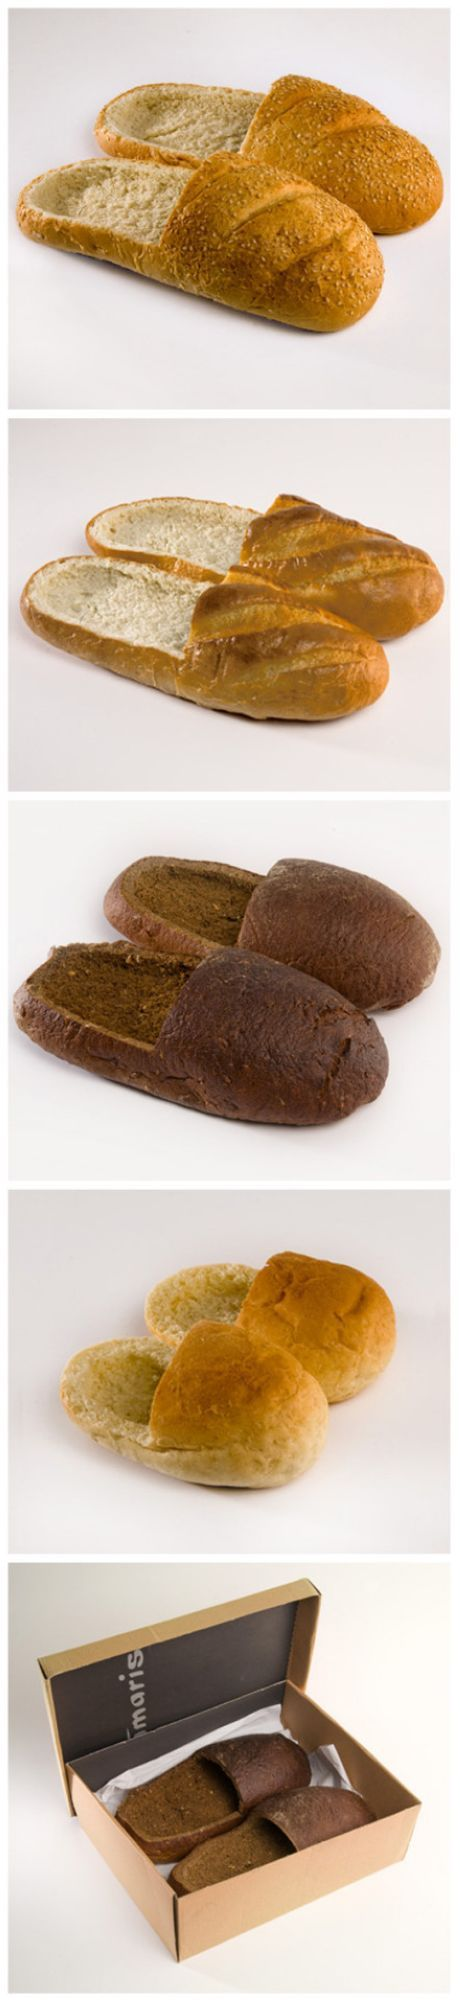 Slippers bread